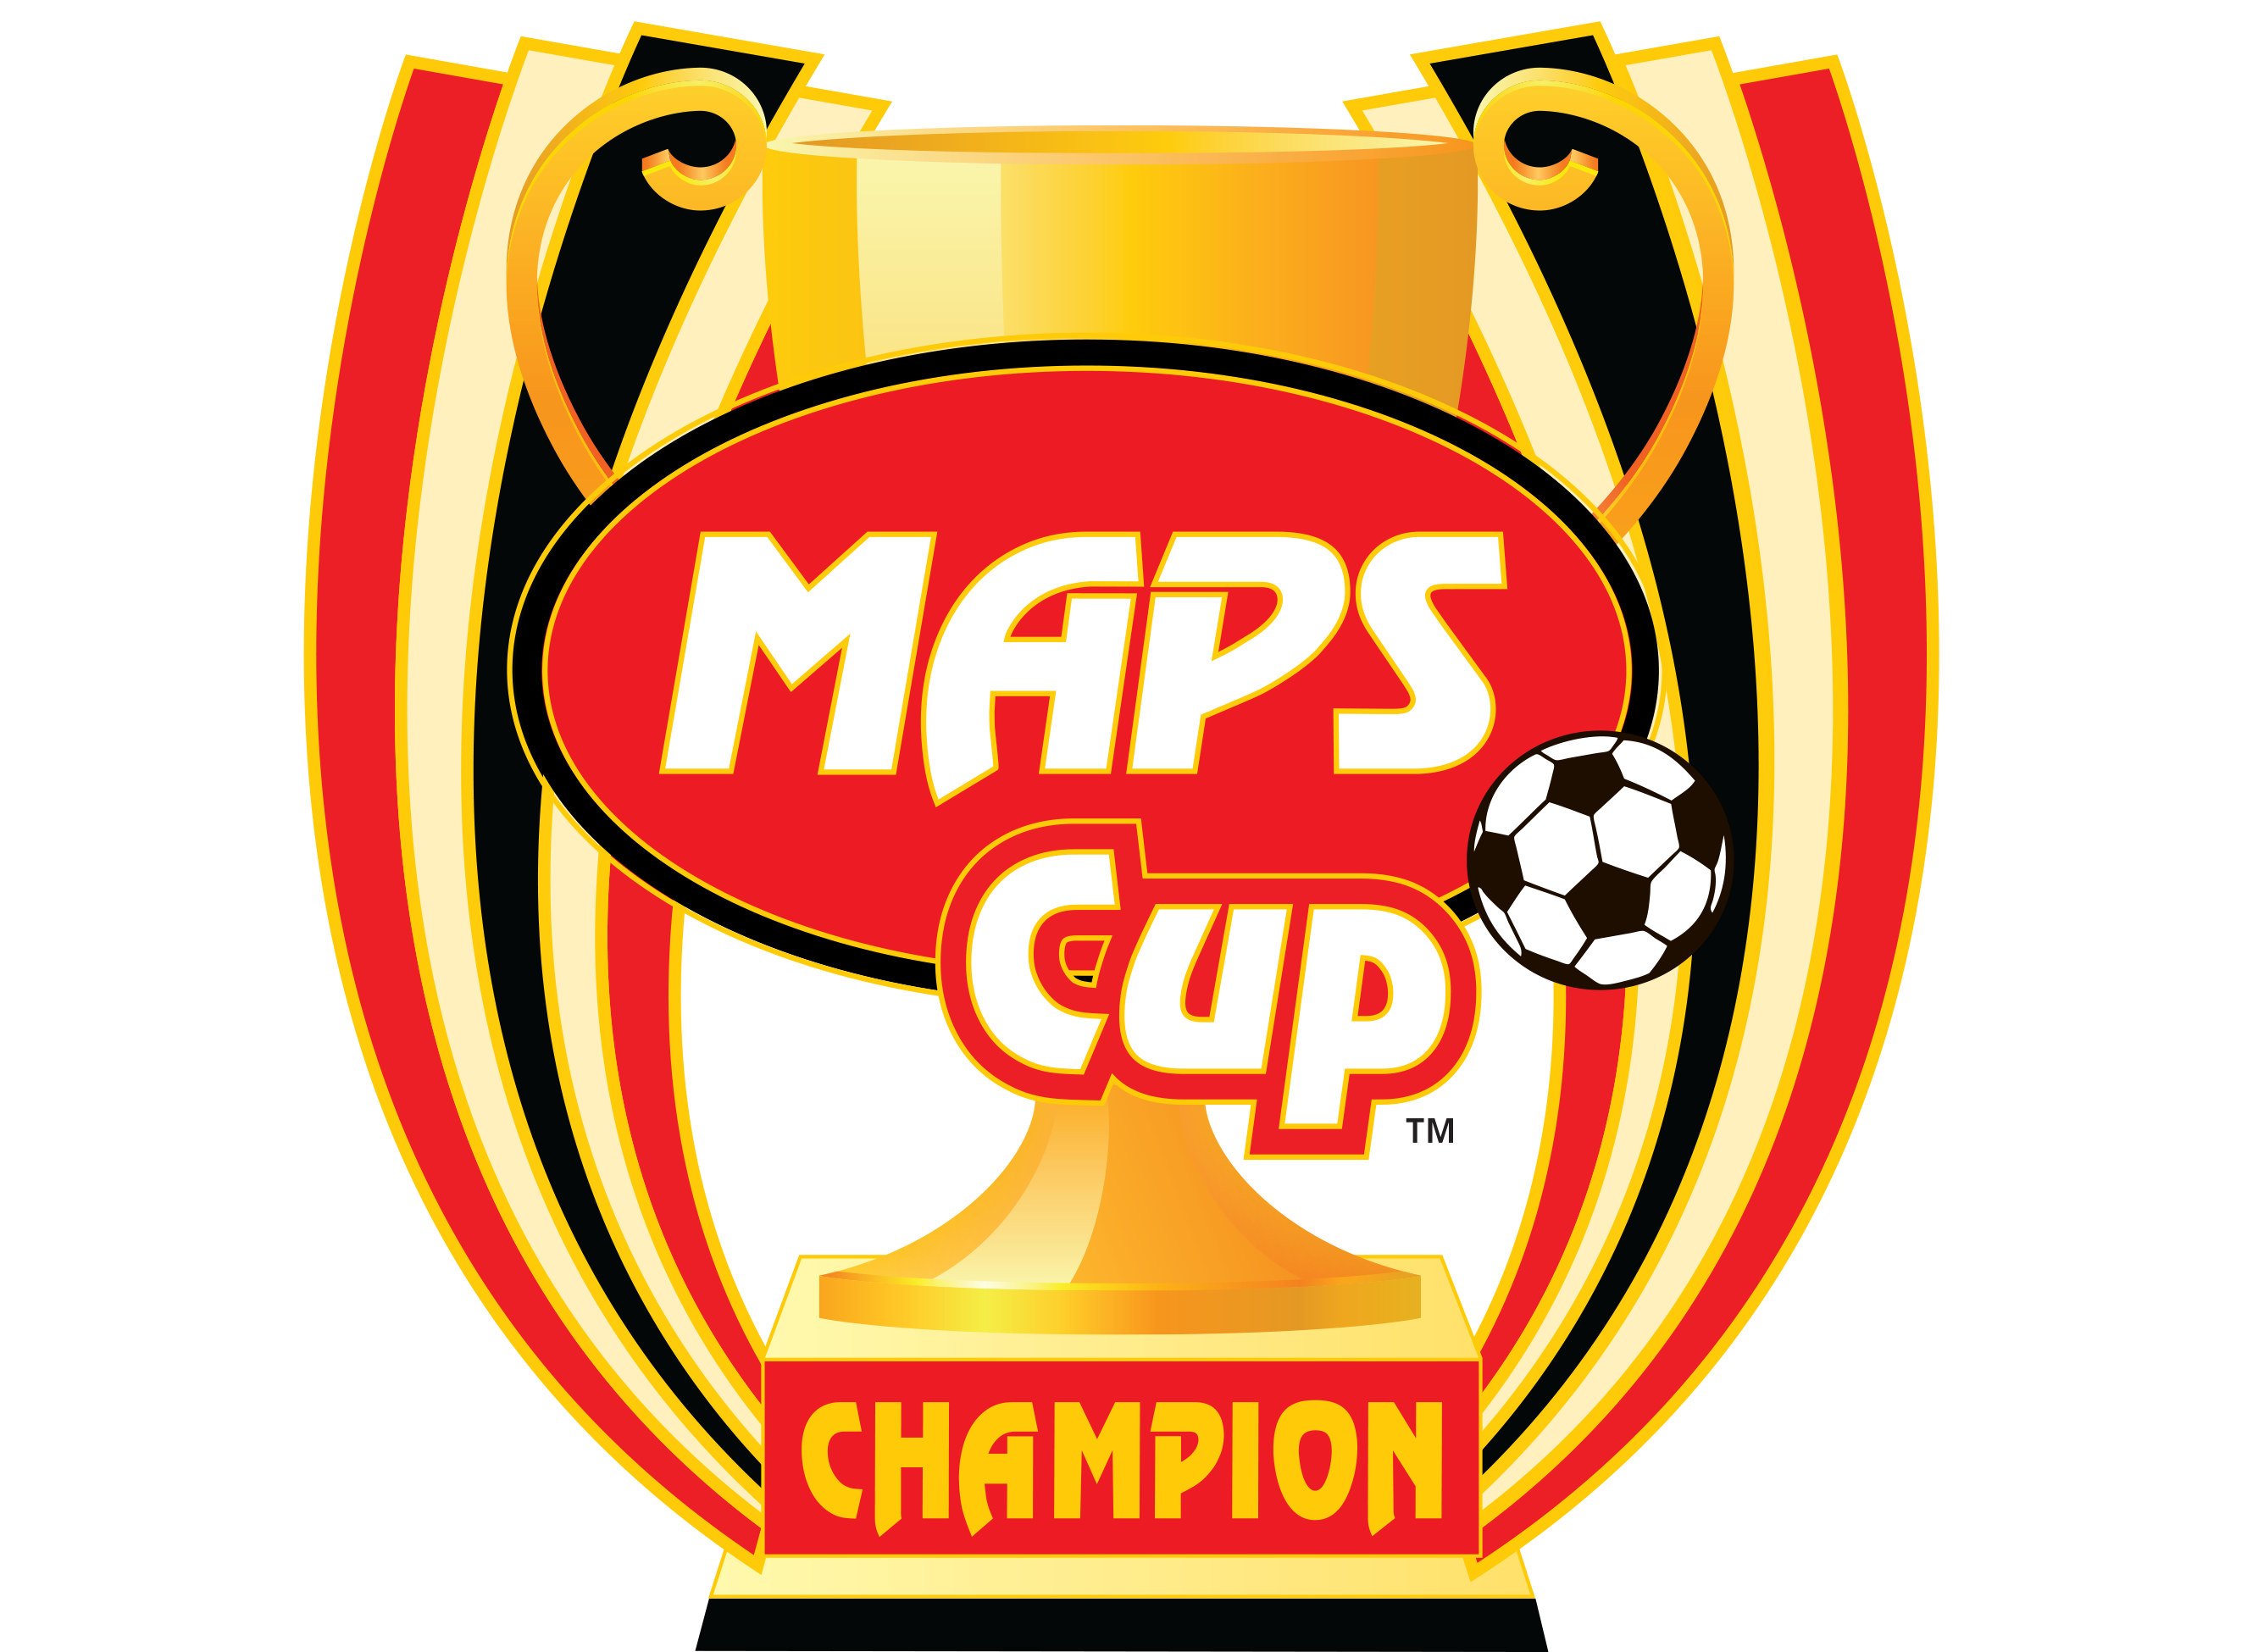 MAPS Cup - Maps soccer